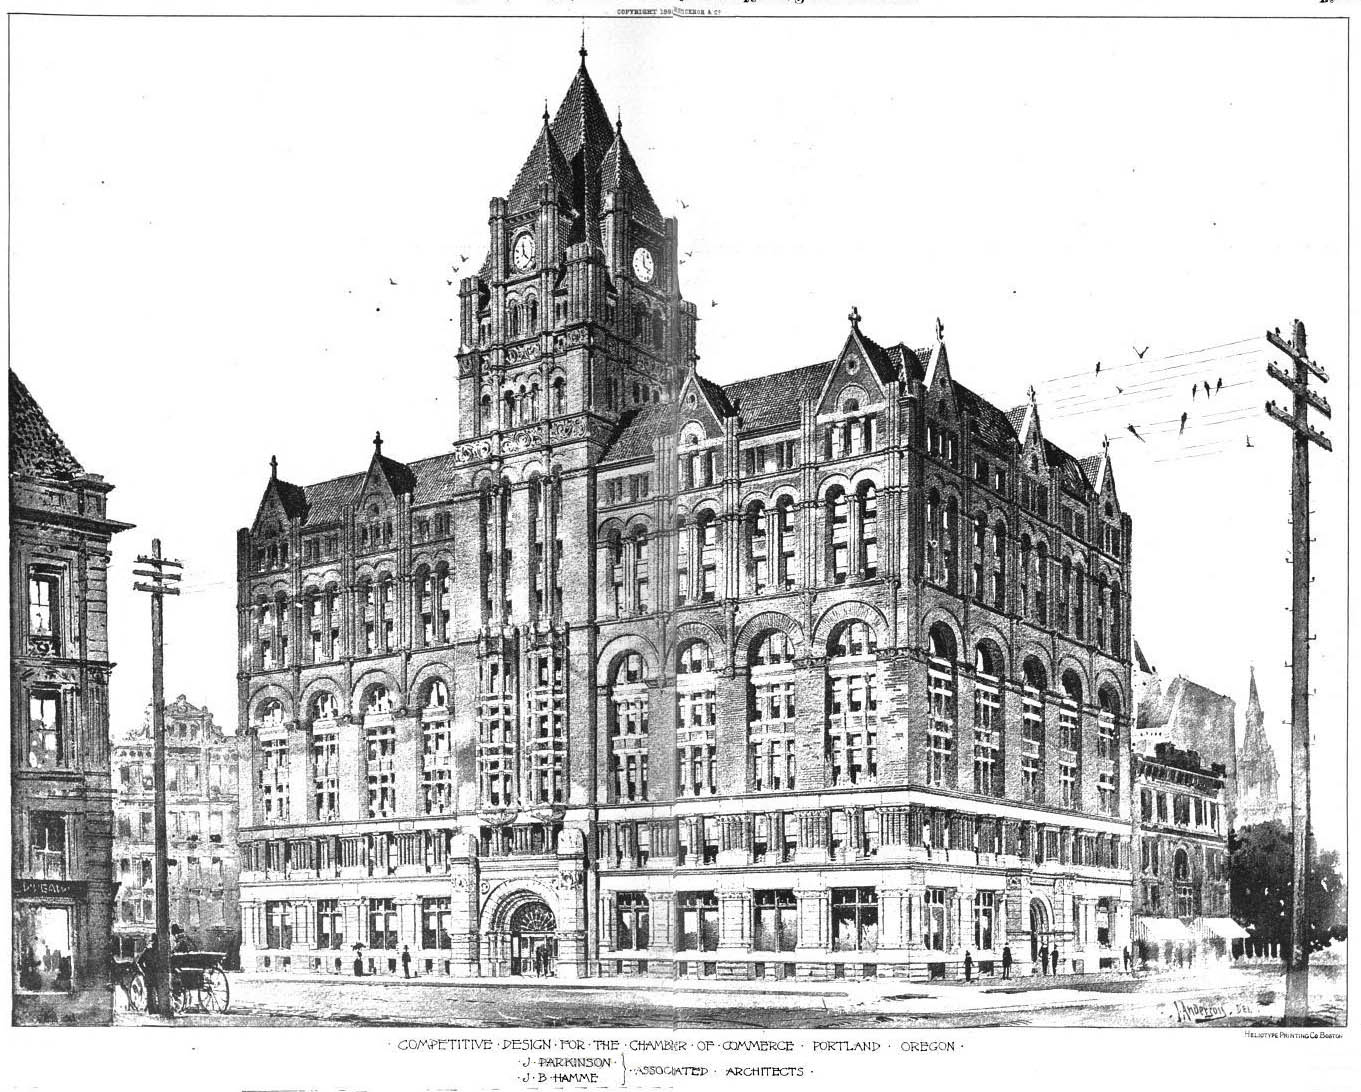 Chamber of commerce illustration 1890 vintage portland 1890 home architecture